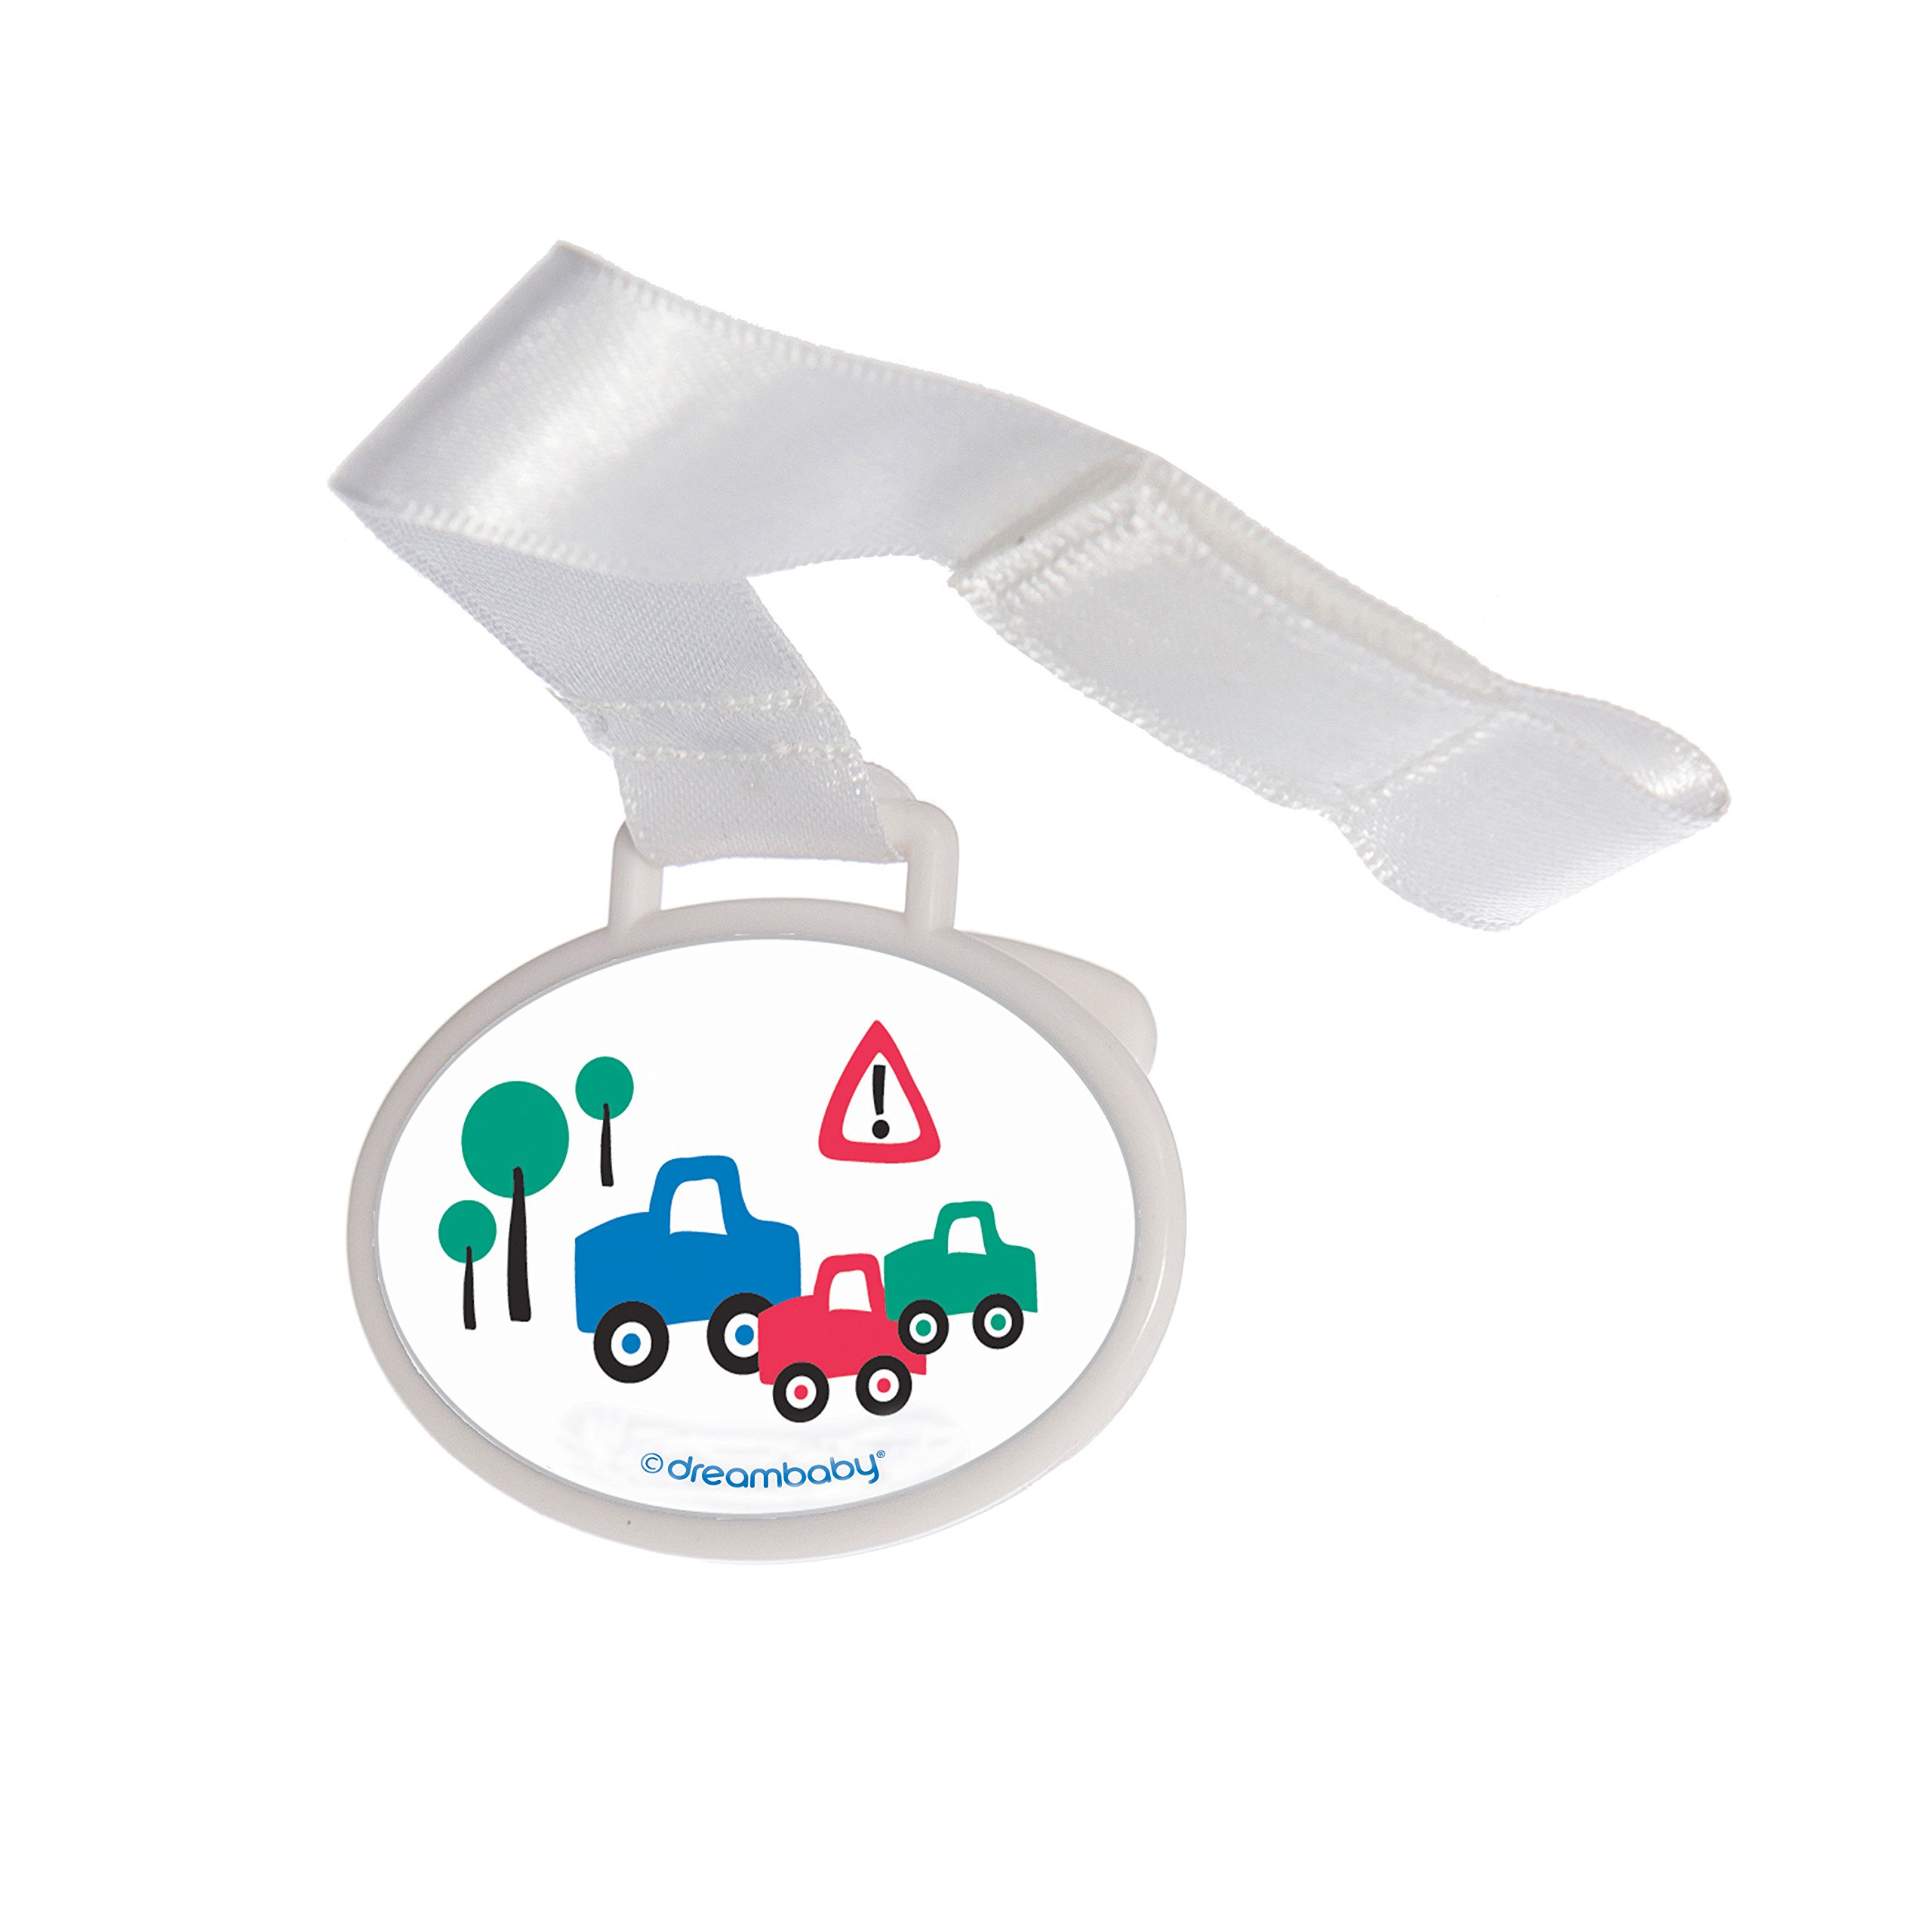 Dreambaby Pacifier Holder, Car by Dreambaby